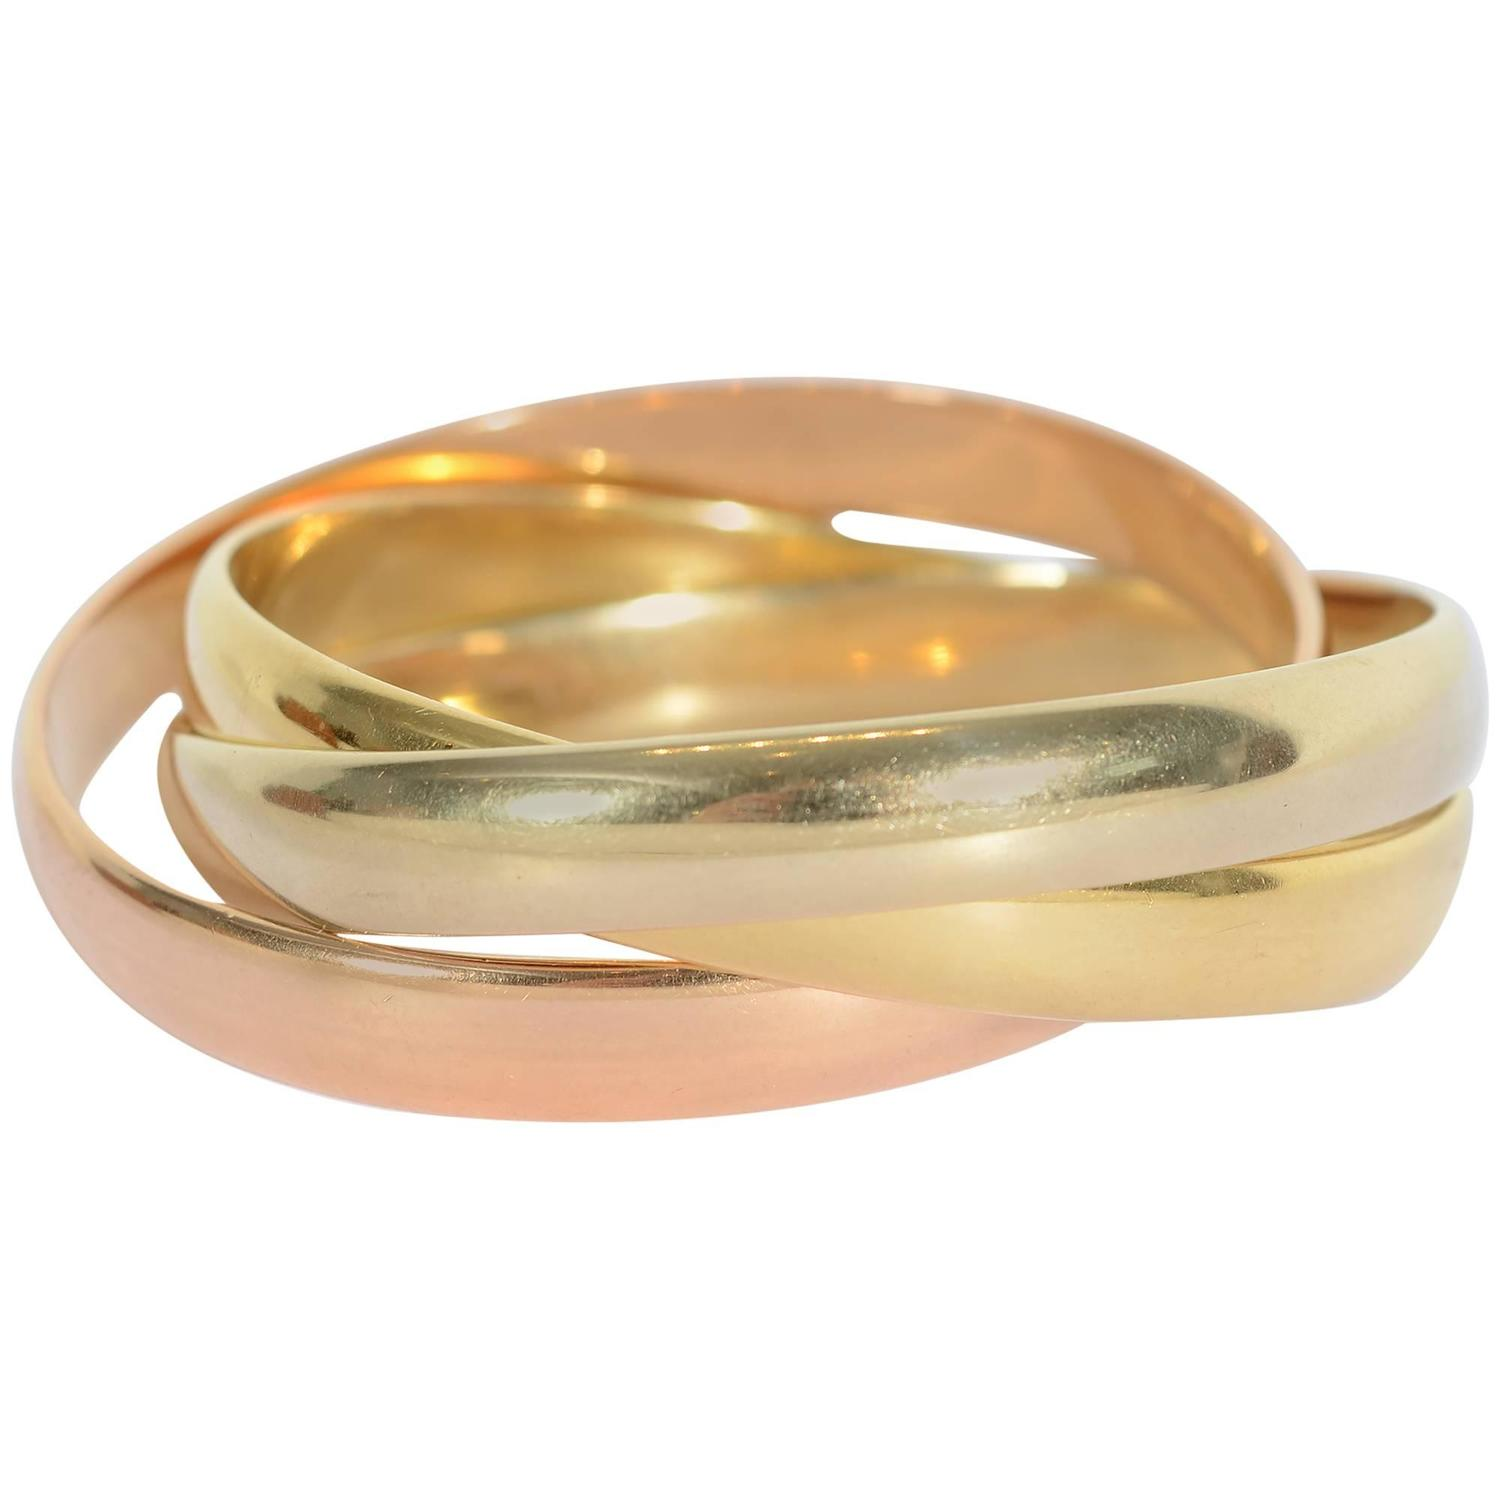 Heavy Weight Cartier Trinity Gold Bangle Bracelets at 1stdibs